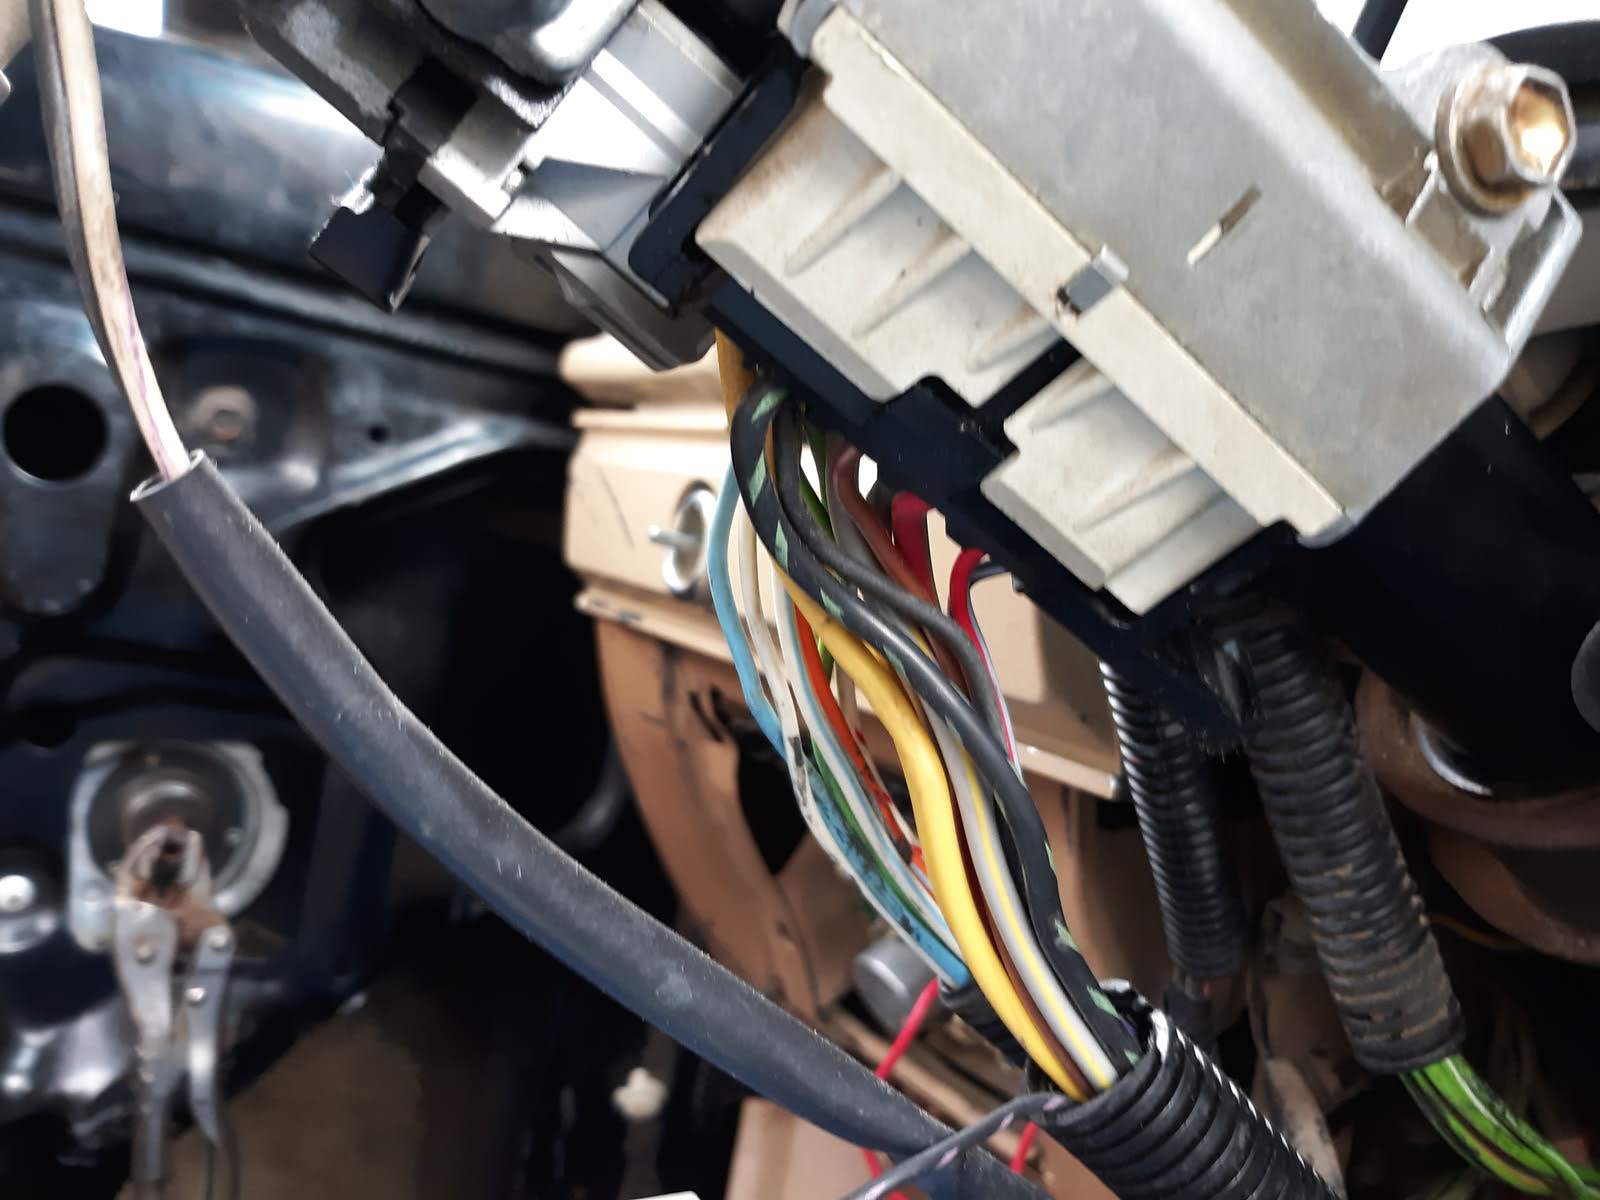 Ford Ranger Questions - Wiring harness - CarGurus on ford fuel pump wiring diagram, triton snowmobile trailer wiring diagram, msd distributor wiring diagram, 1980 toyota pickup wiring diagram, 96 mustang radio wiring diagram,